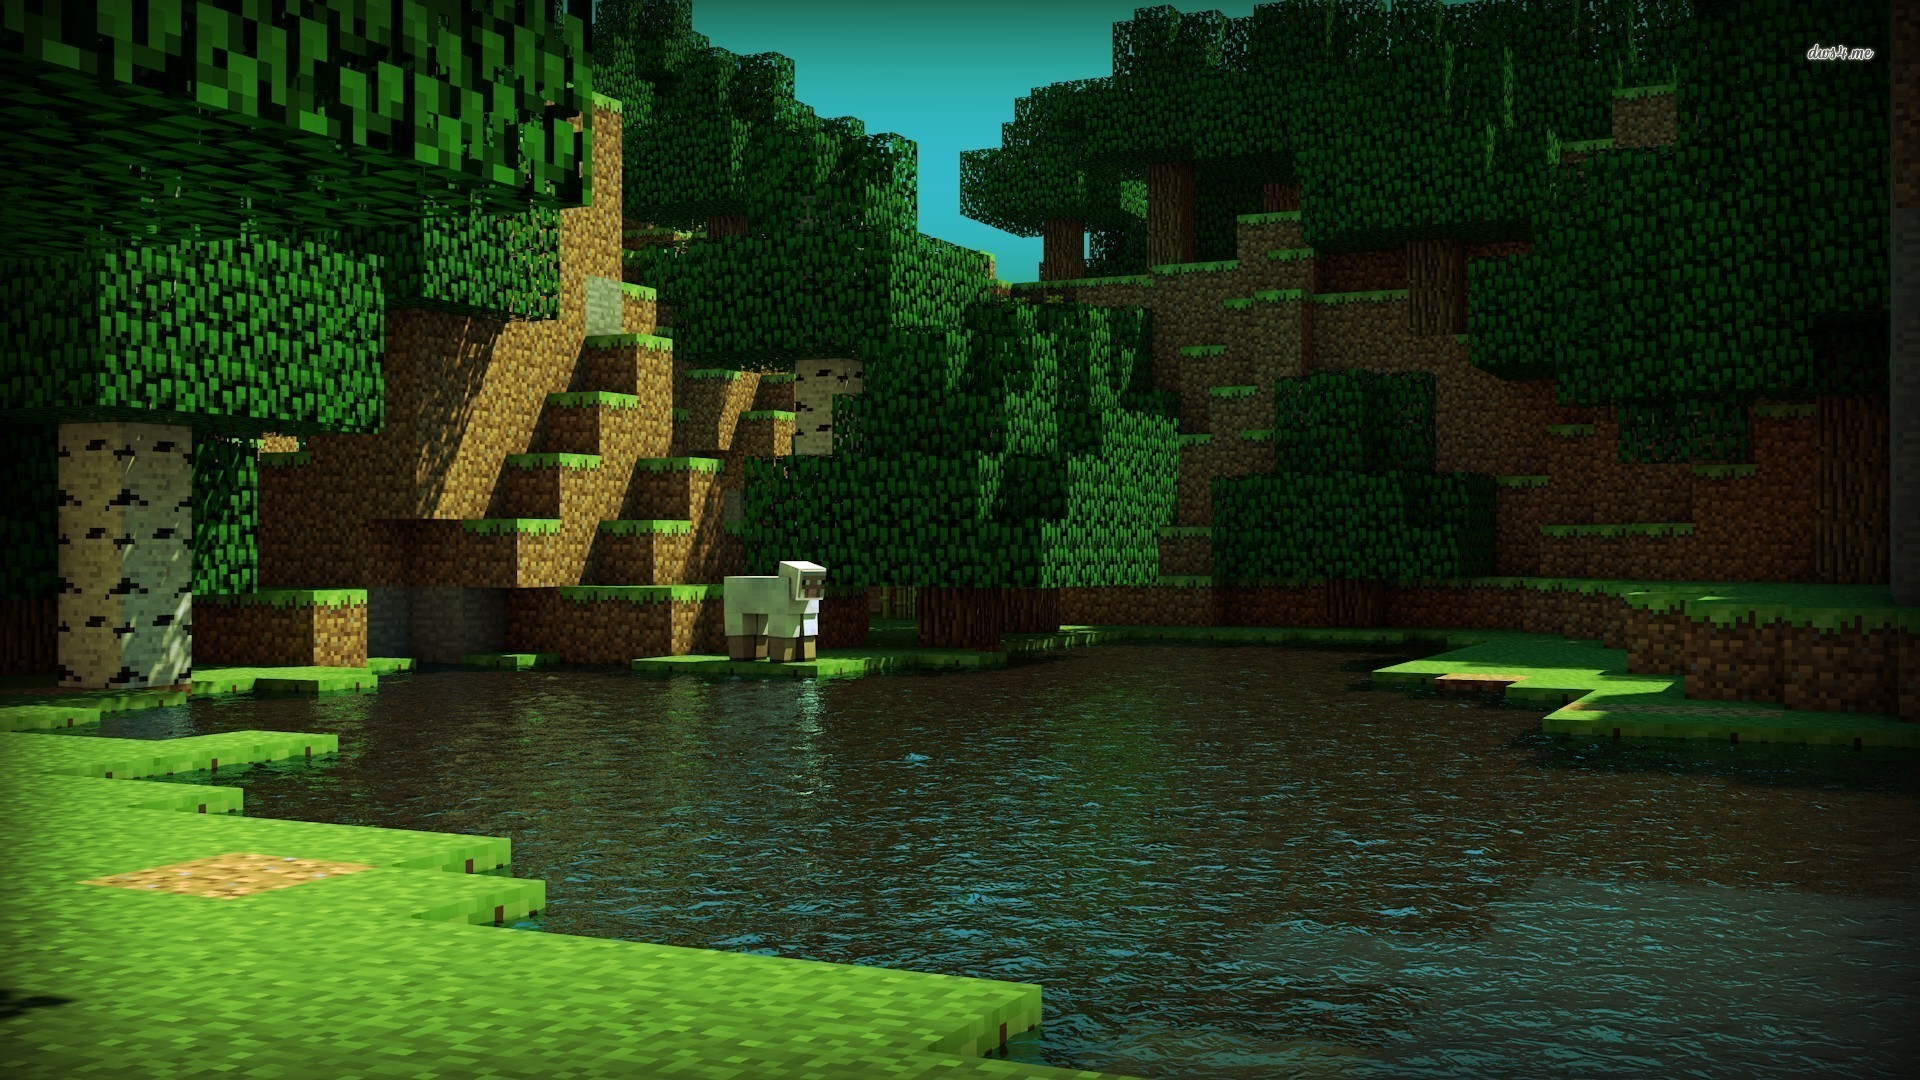 wallpaper hd minecraft green - photo #40